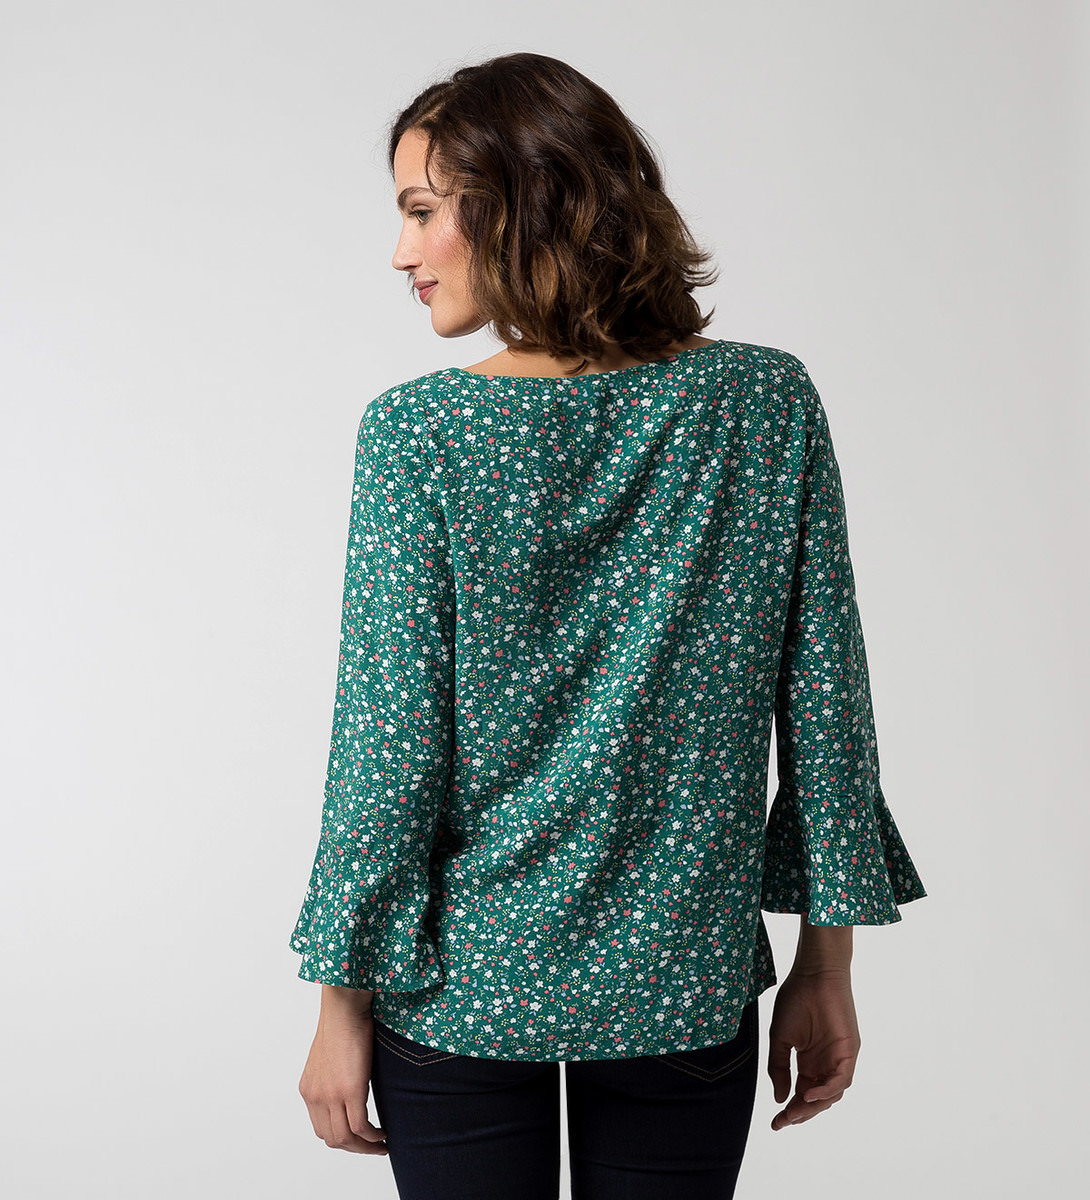 Bluse mit Alloverprint in ivy green